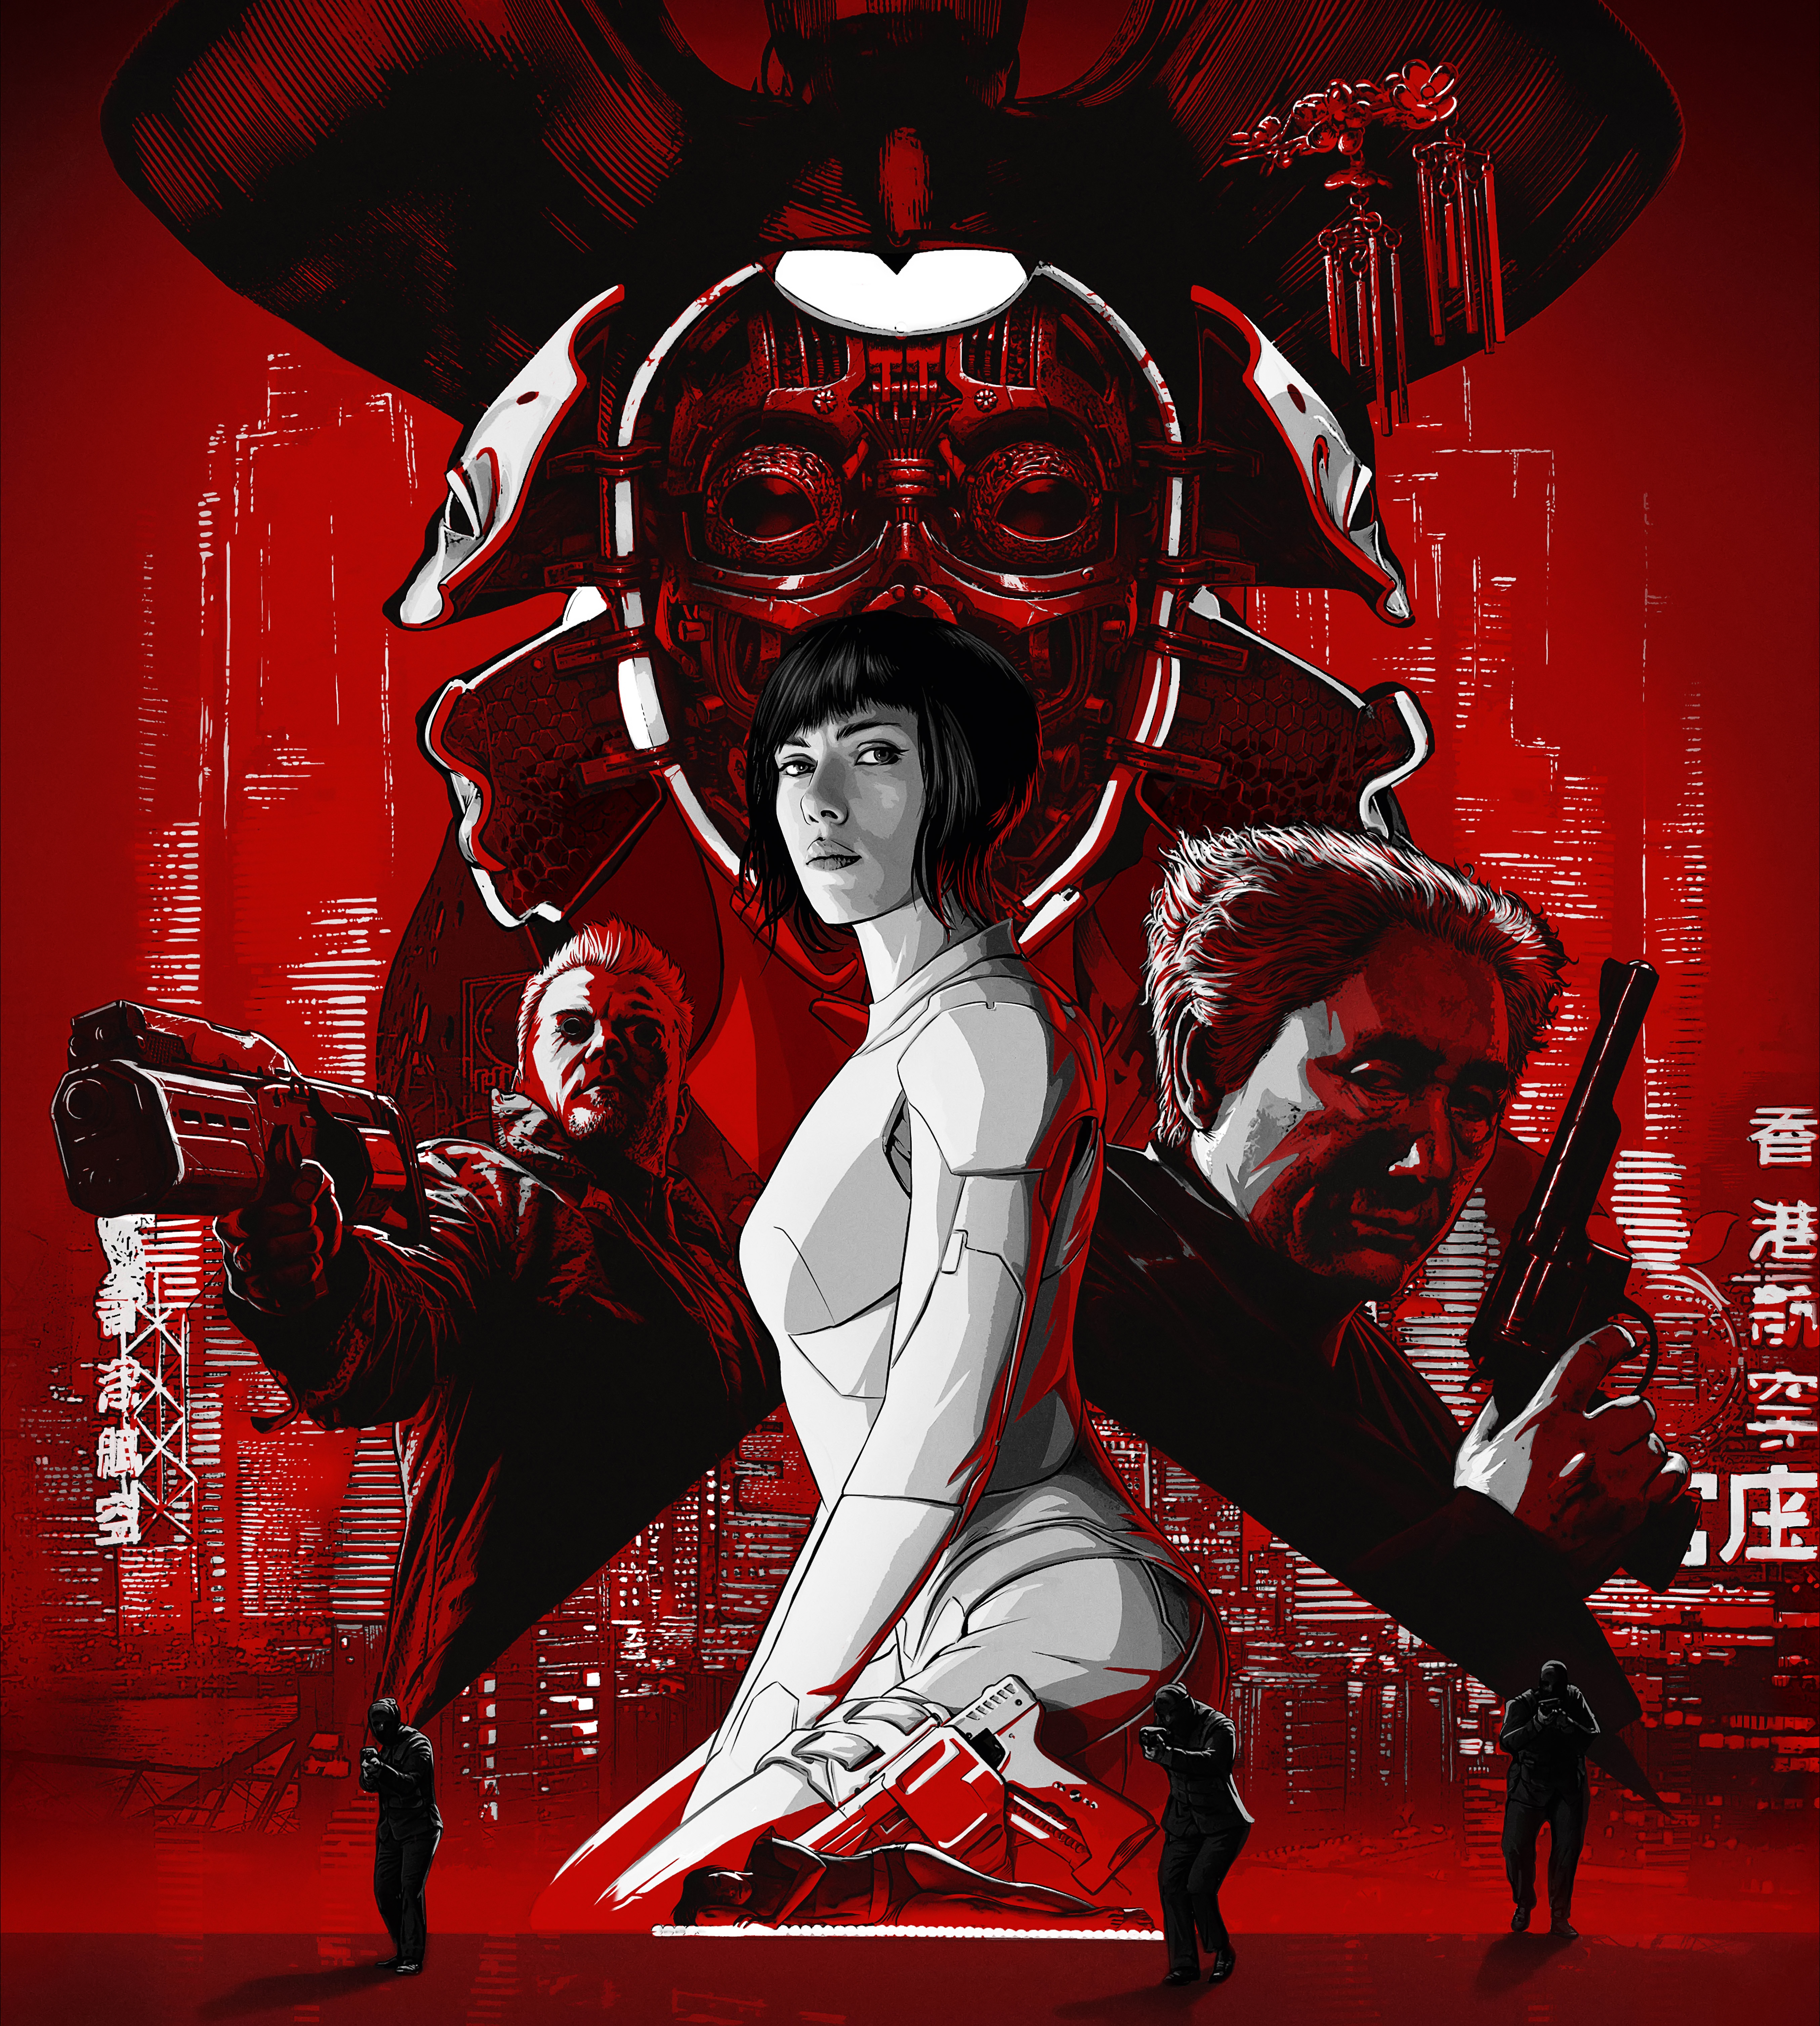 Ghost In The Shell Movie Poster 5416x6028 Wallpaper Teahub Io